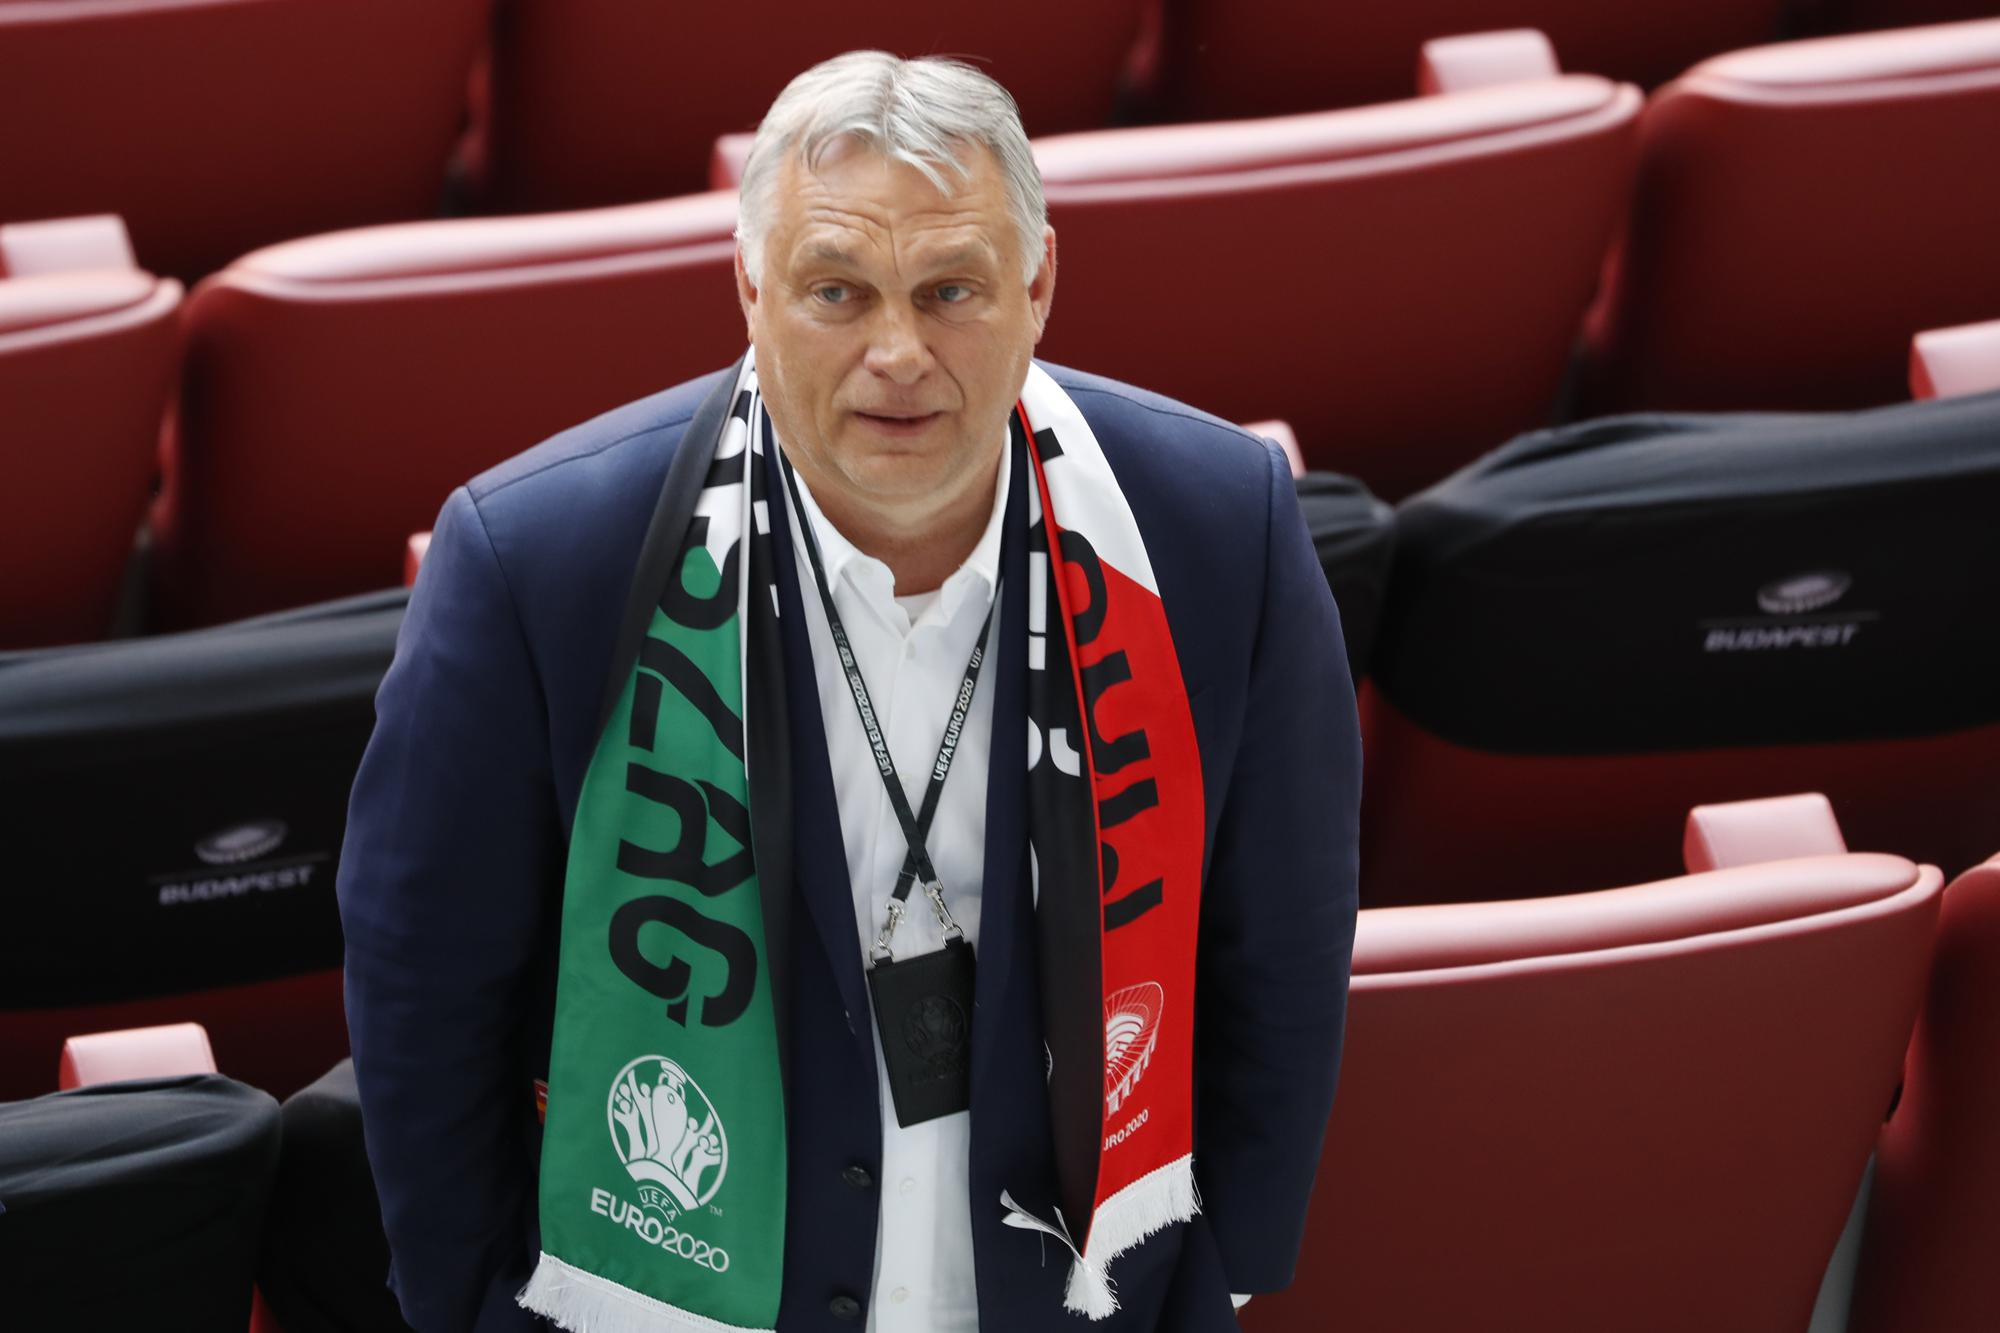 Hungary's PM uses soccer to push vision of right-wing Europe